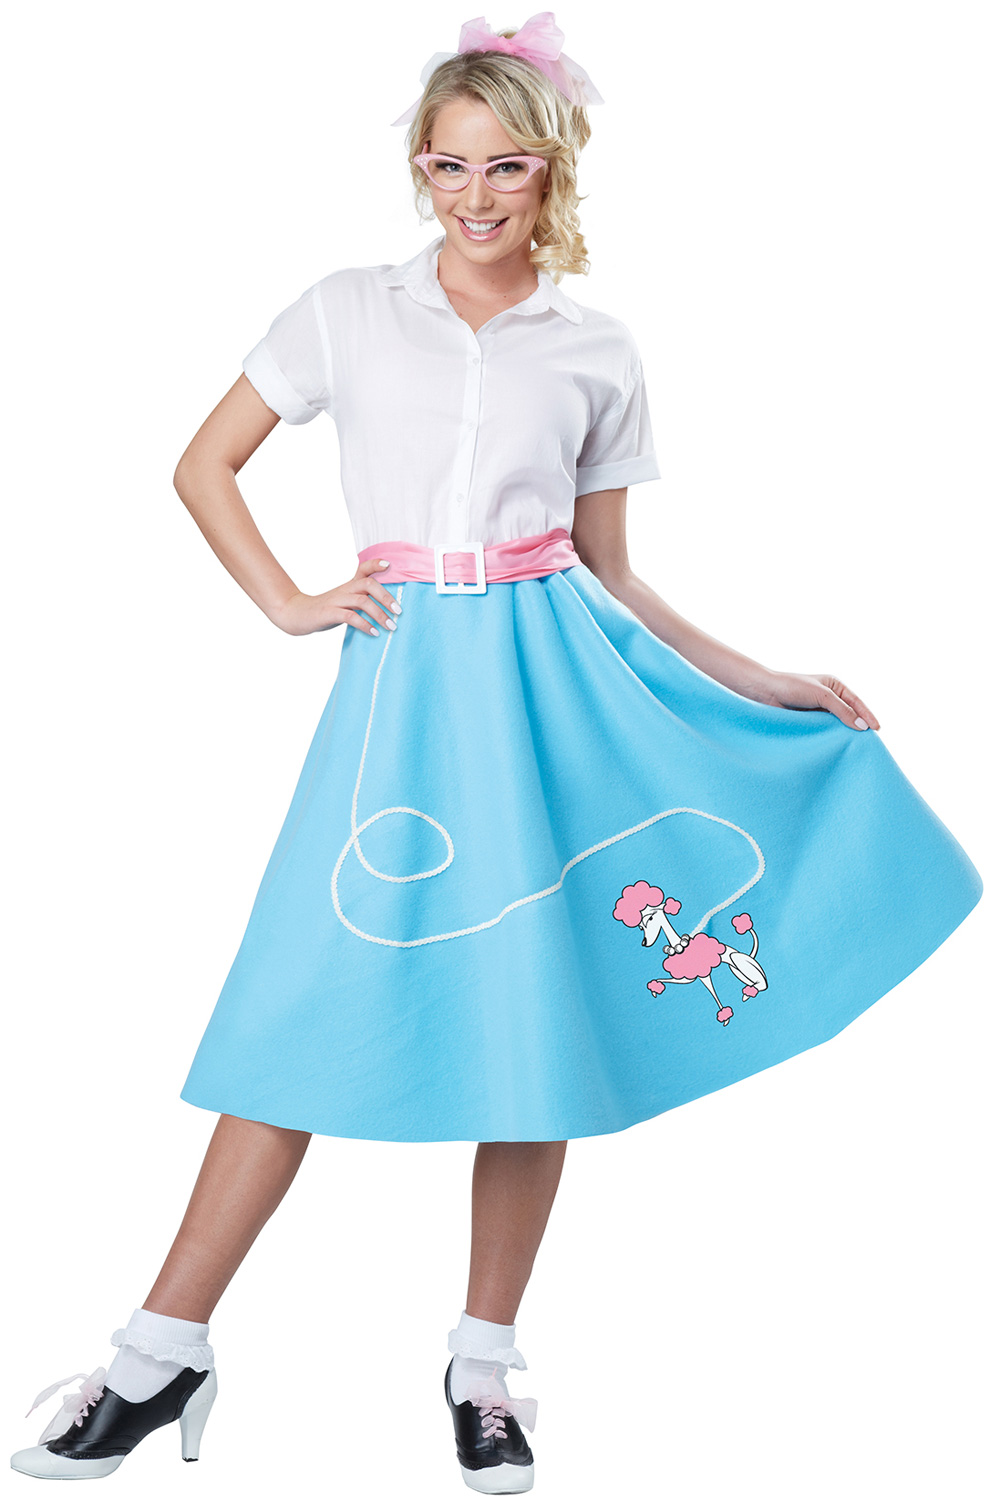 Authentic Poodle Skirts Girls